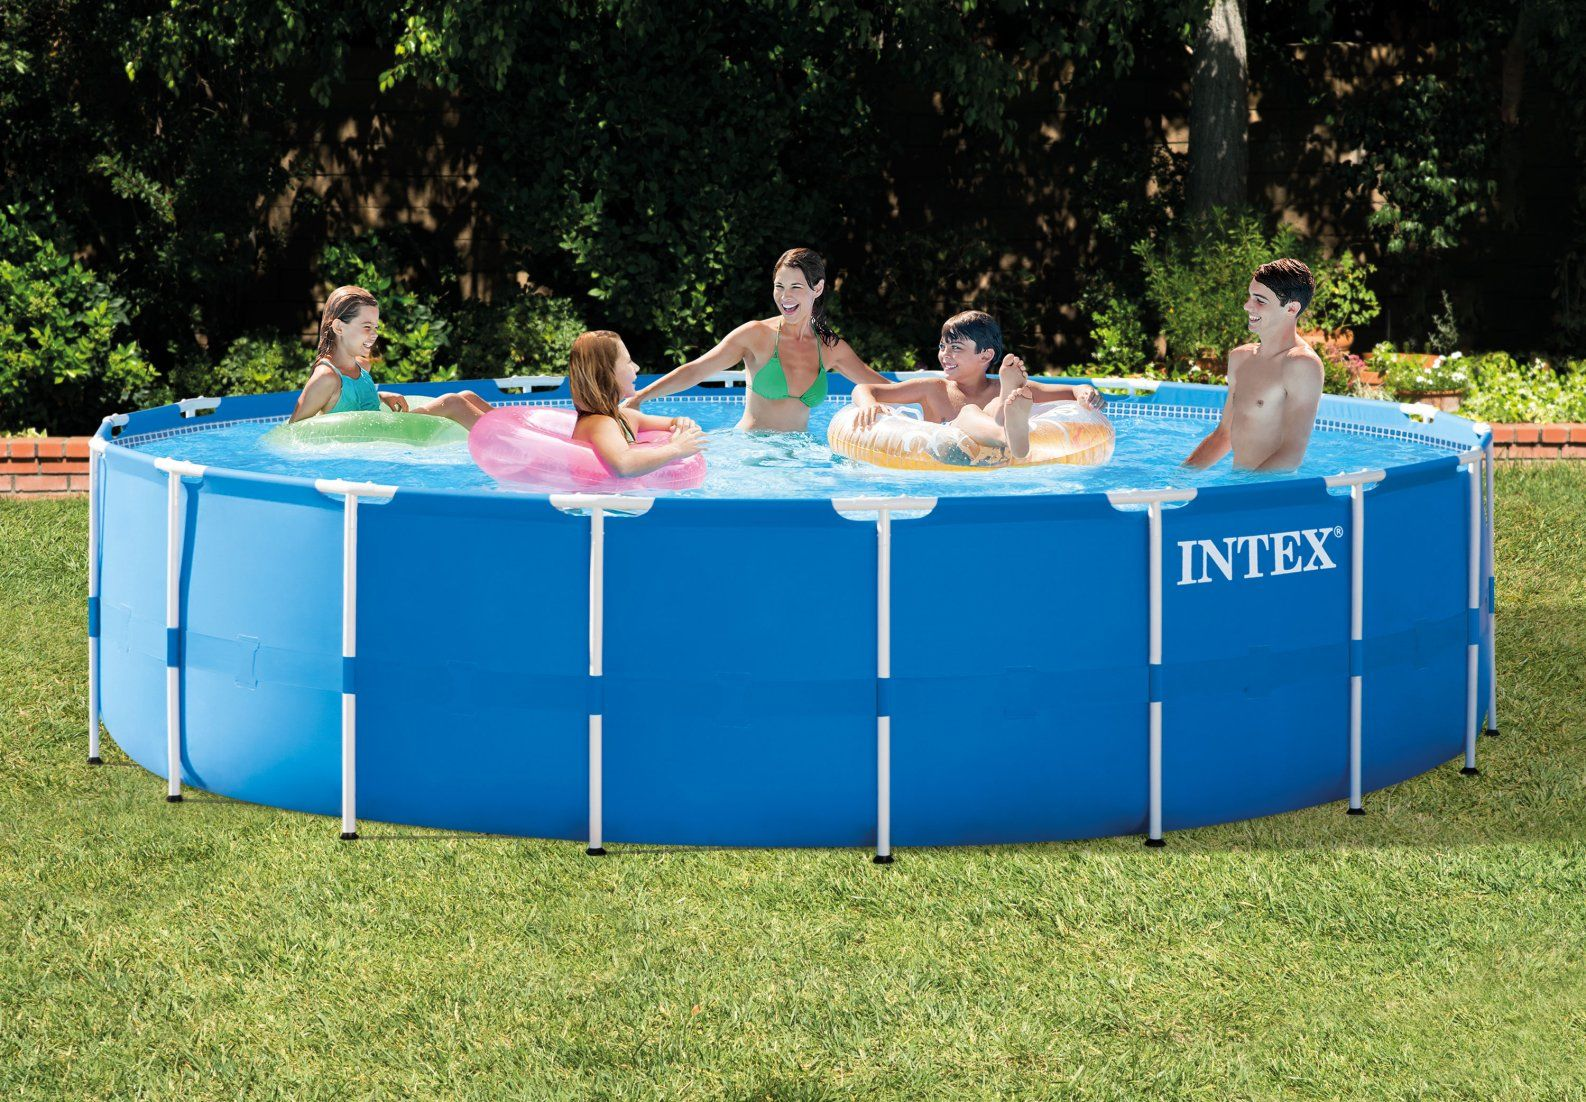 Best metal frame pool intex metal frame pool review for Best above ground pool reviews